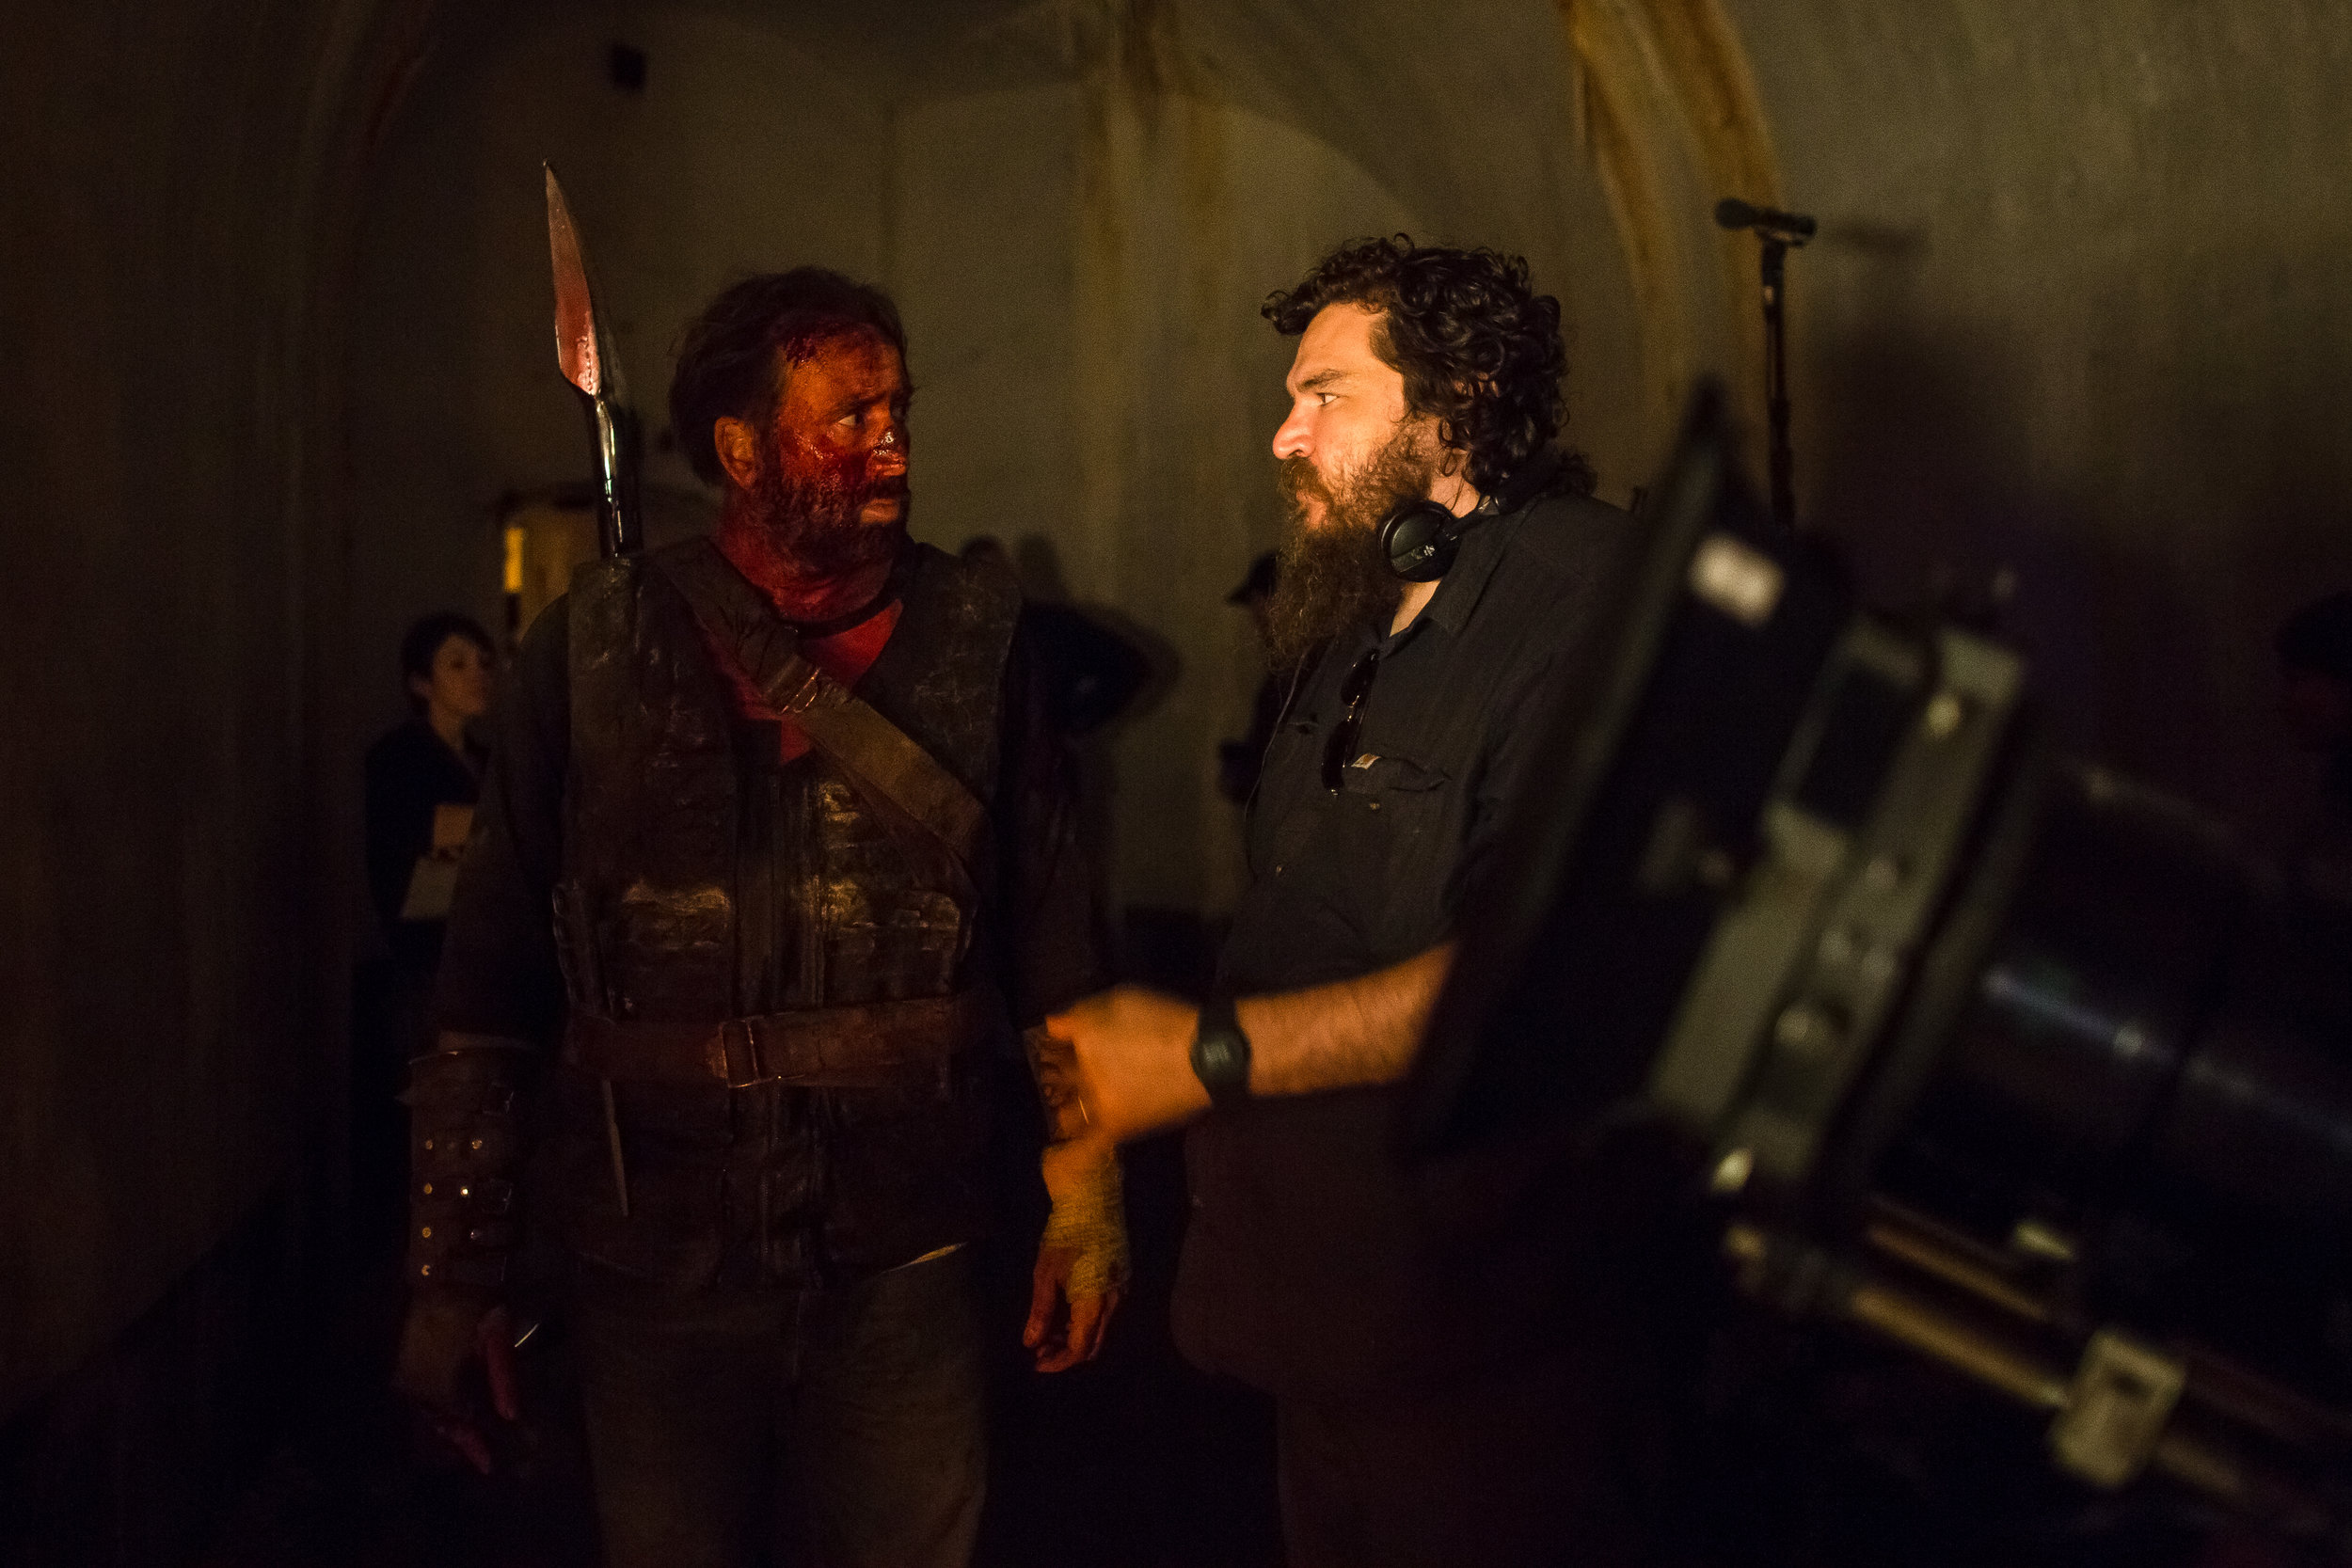 """(L-R)  Nicolas Cage  and Director  Panos Cosmatos  behind the scenes of the action, thriller film  """" MANDY """"  an  RLJE Films  release. Photo courtesy of  RLJE Films ."""